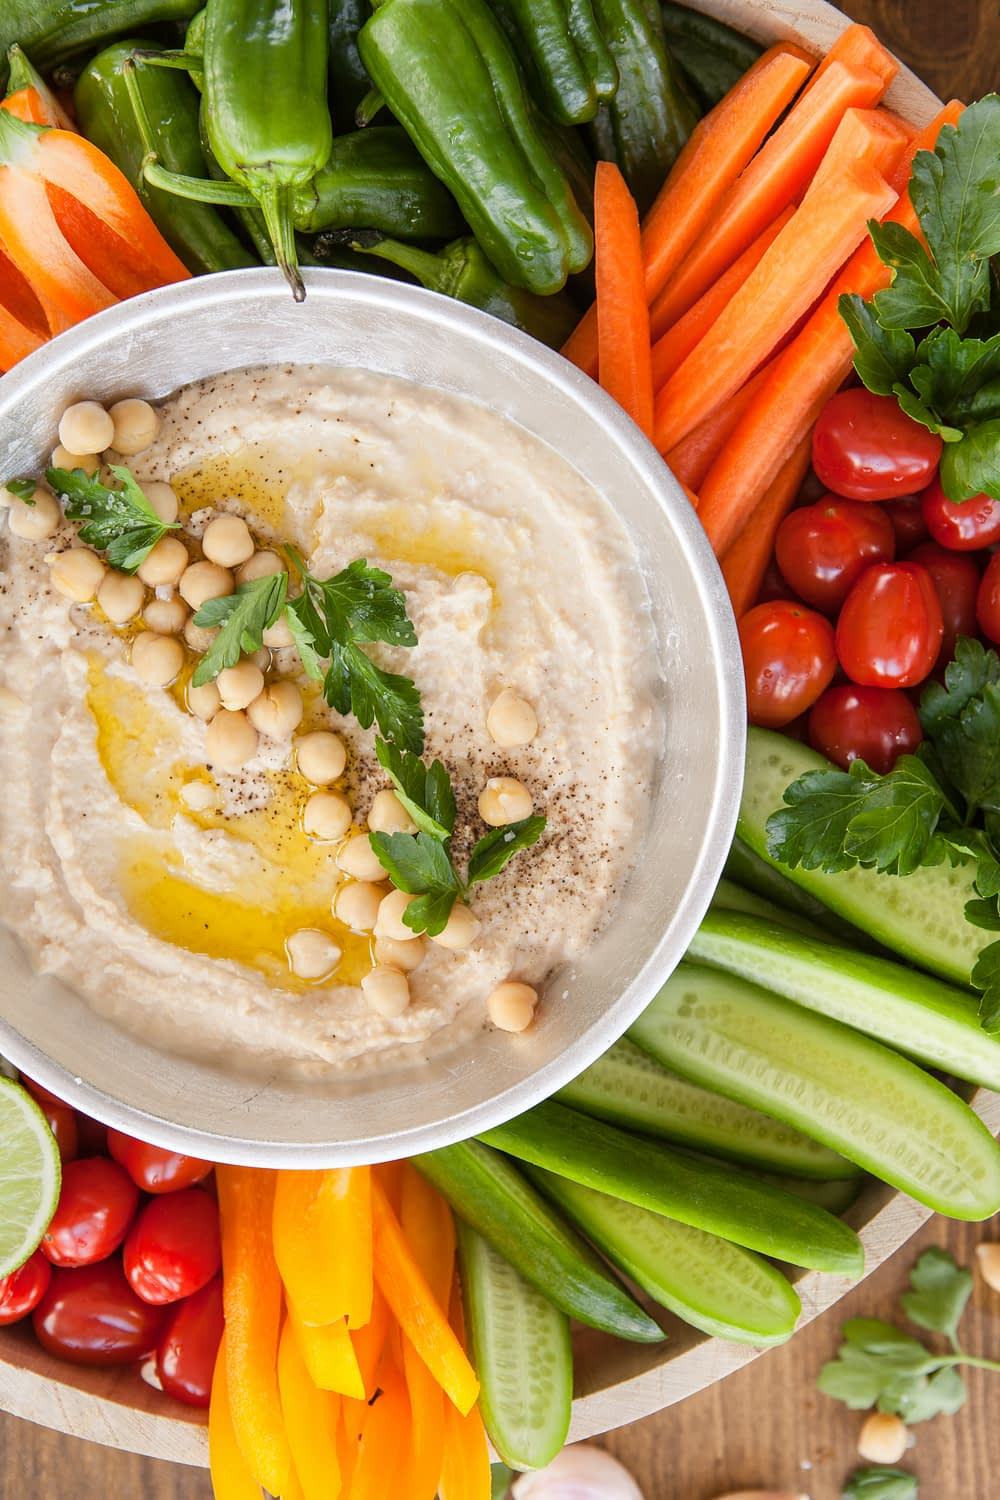 large bowl of homemade hummus surrounded by colorful local vegetables